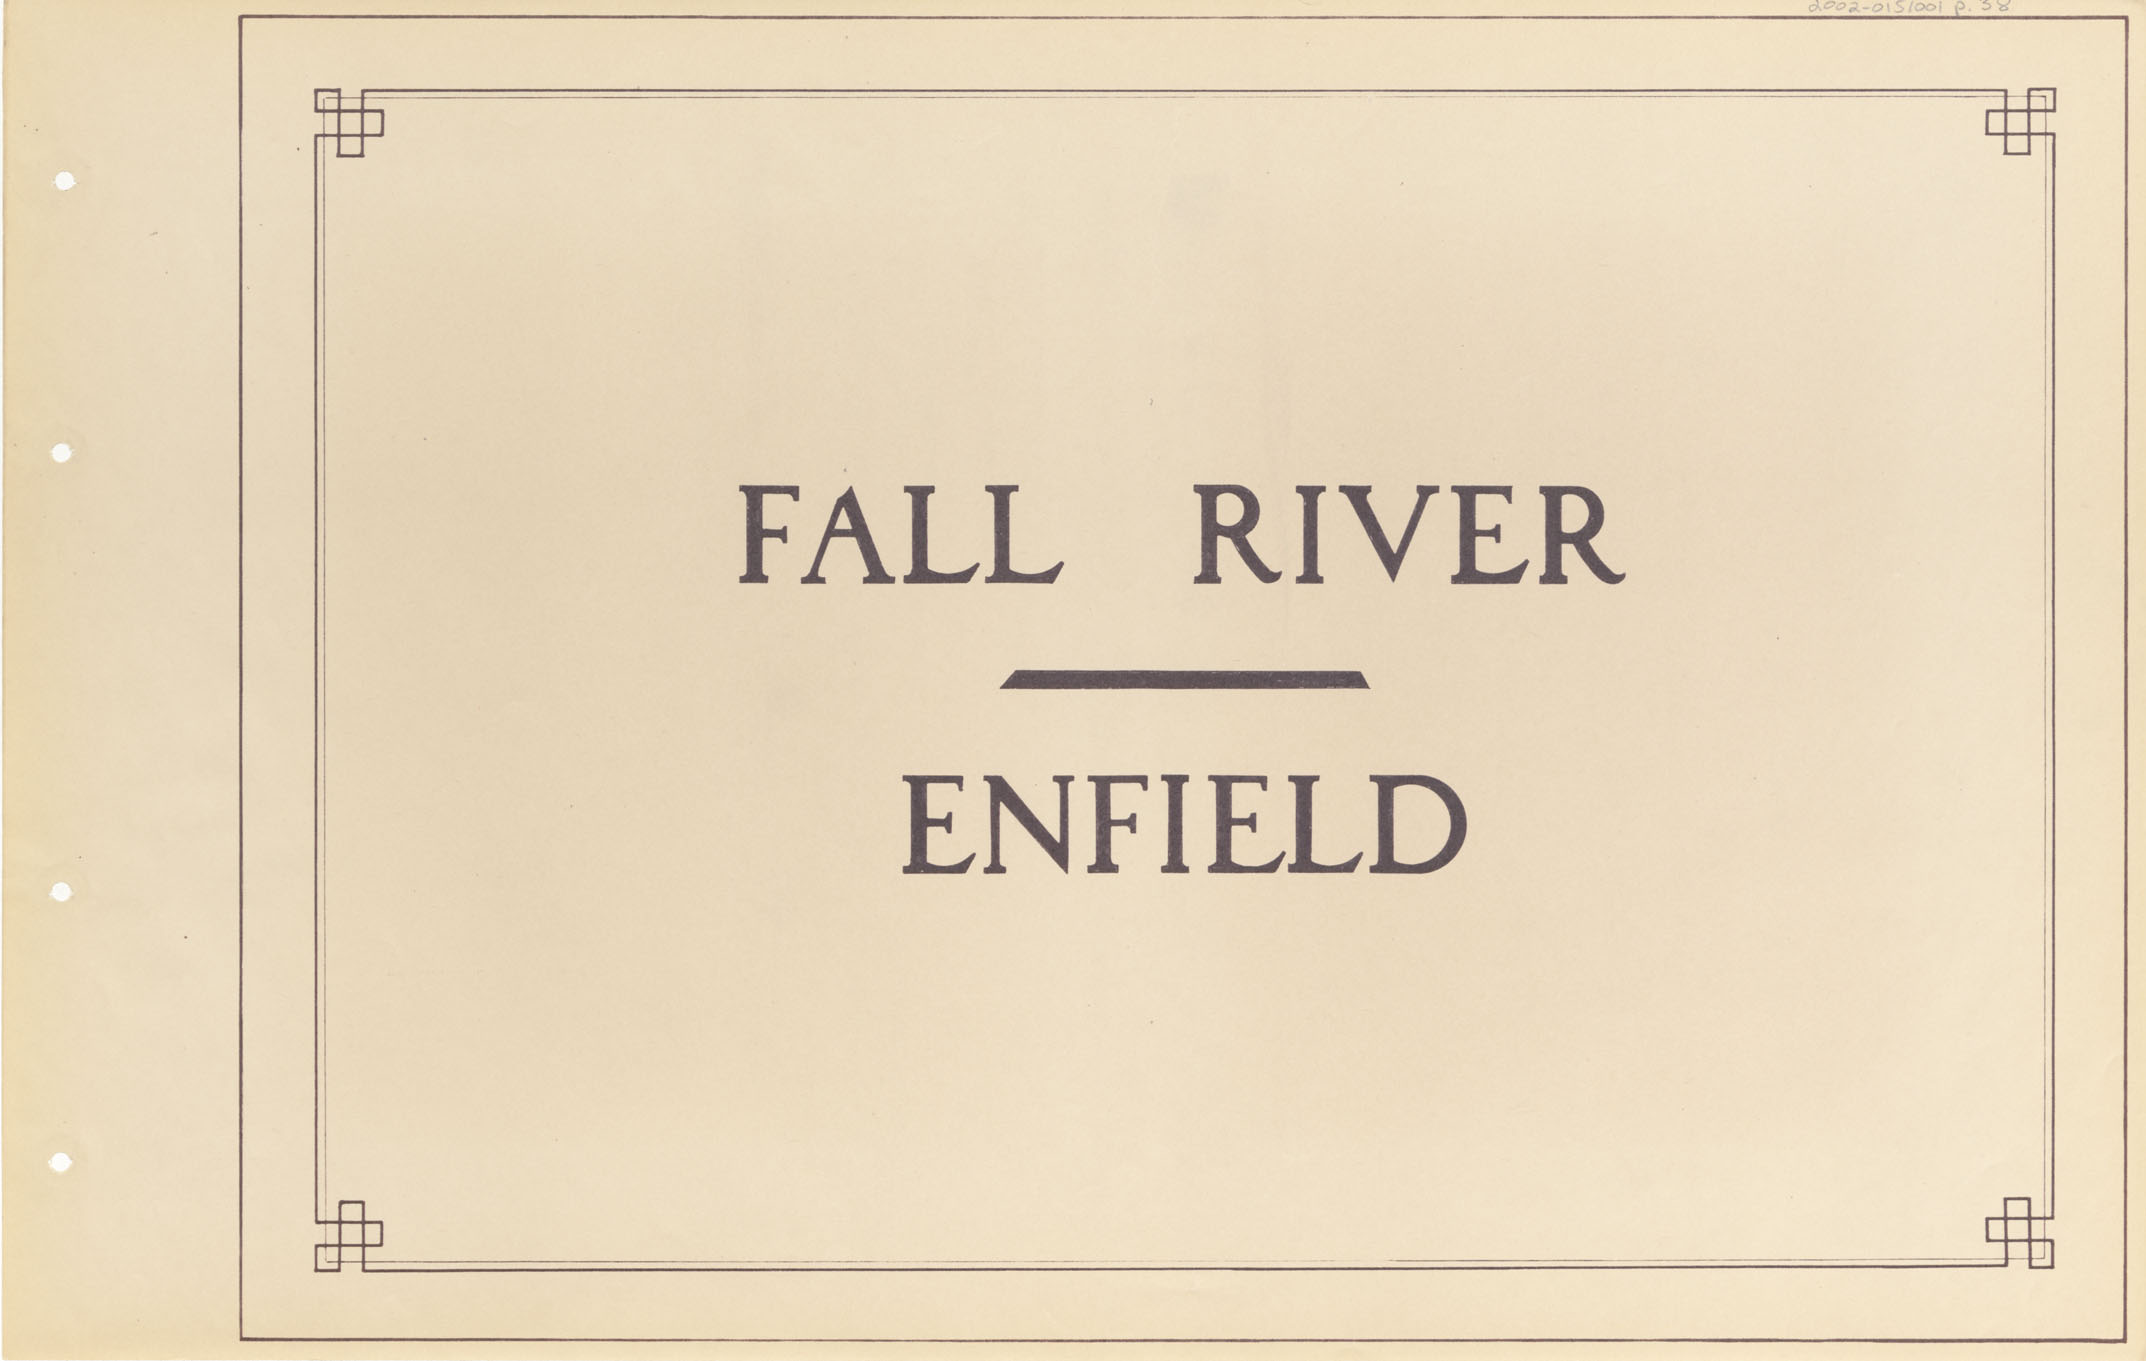 Fall River - Enfield